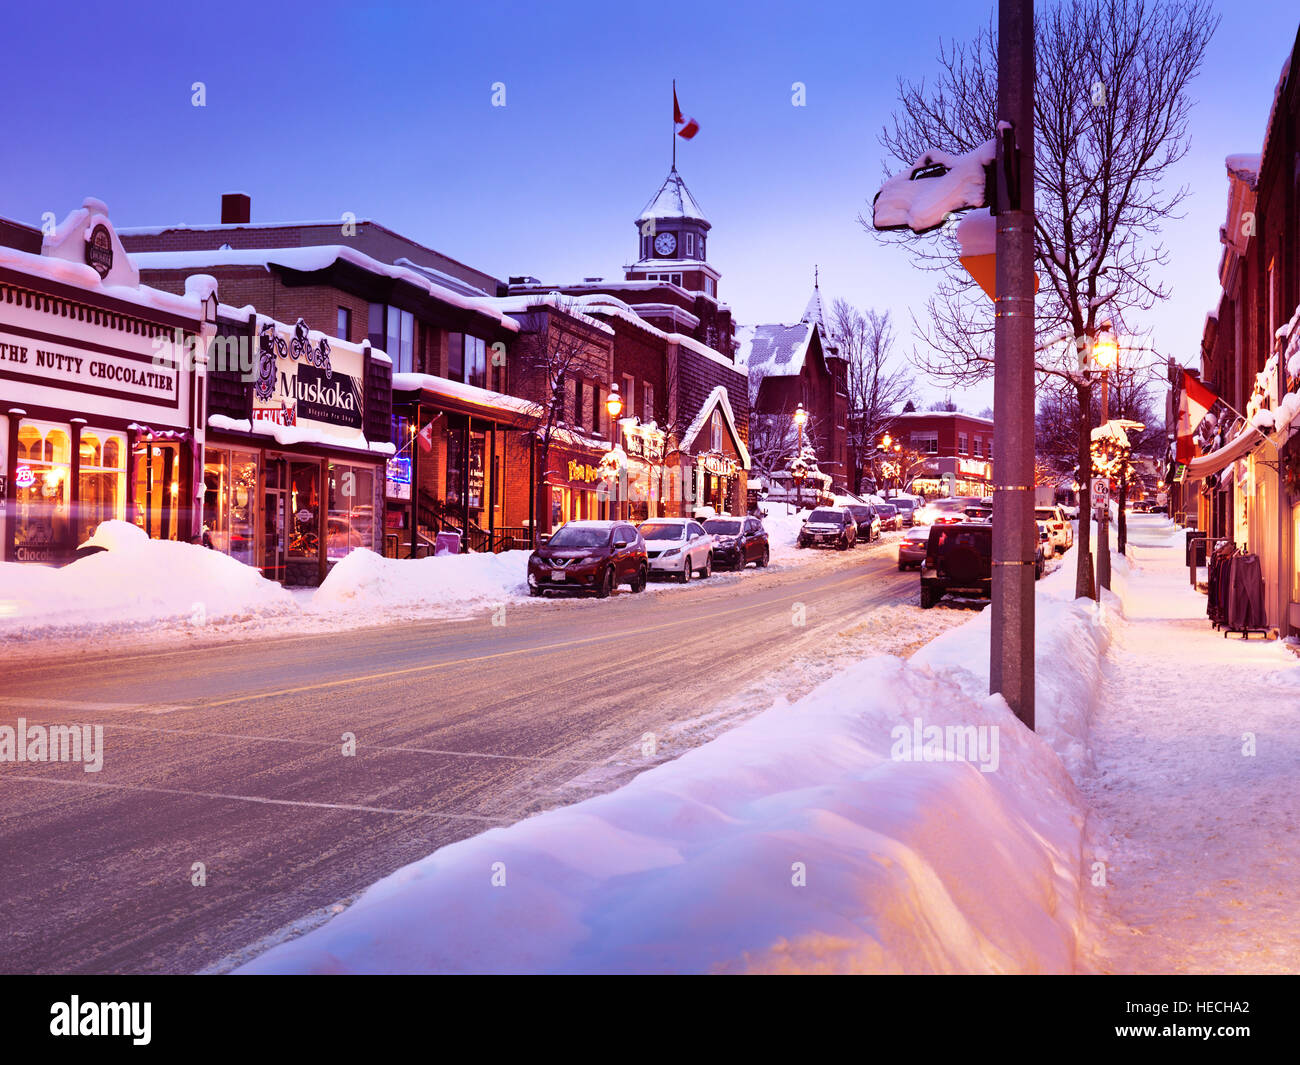 Snowy winter scenery of a Canadian town Huntsville before Christmas, shops on Main street, town center, Muskoka, - Stock Image